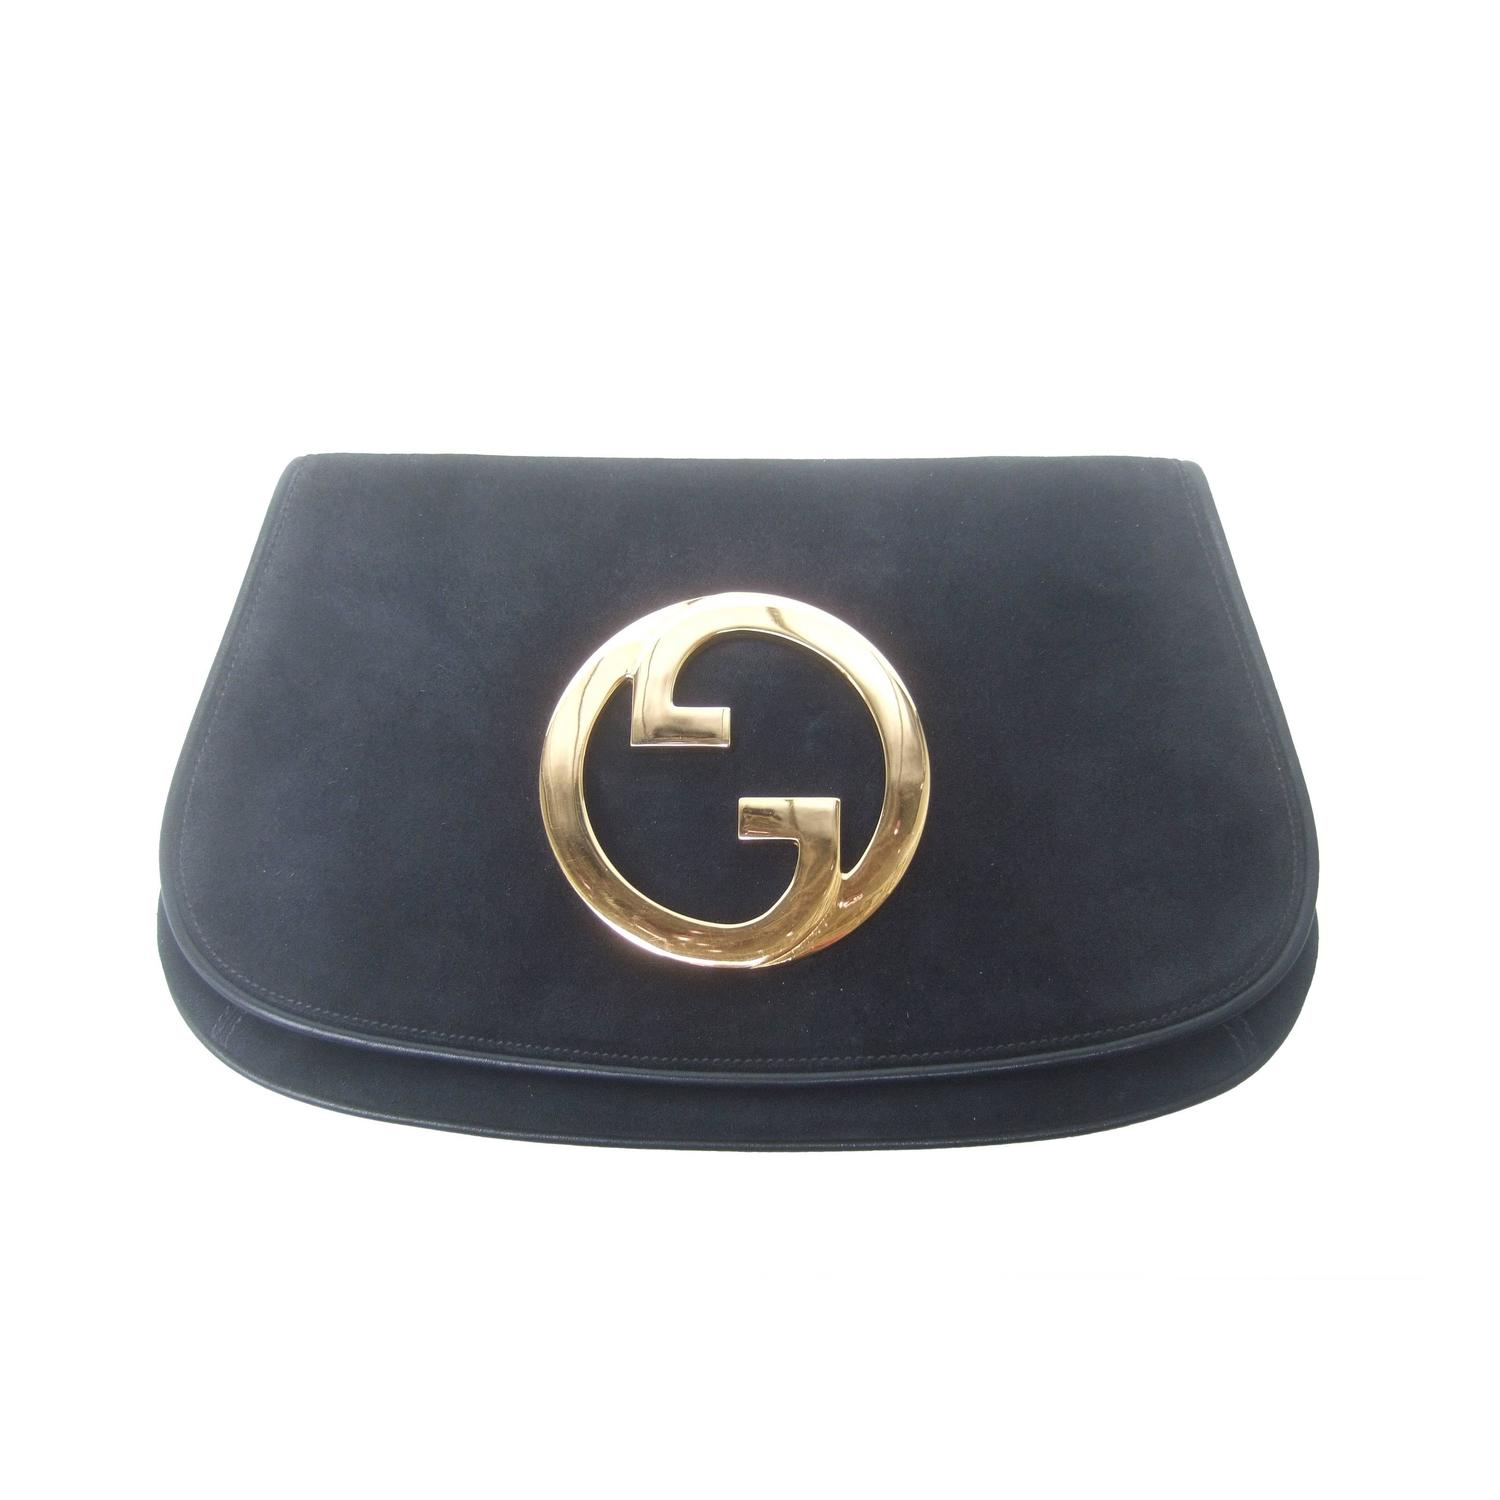 gucci italy black suede blondie clutch bag ca 1970 for sale at 1stdibs